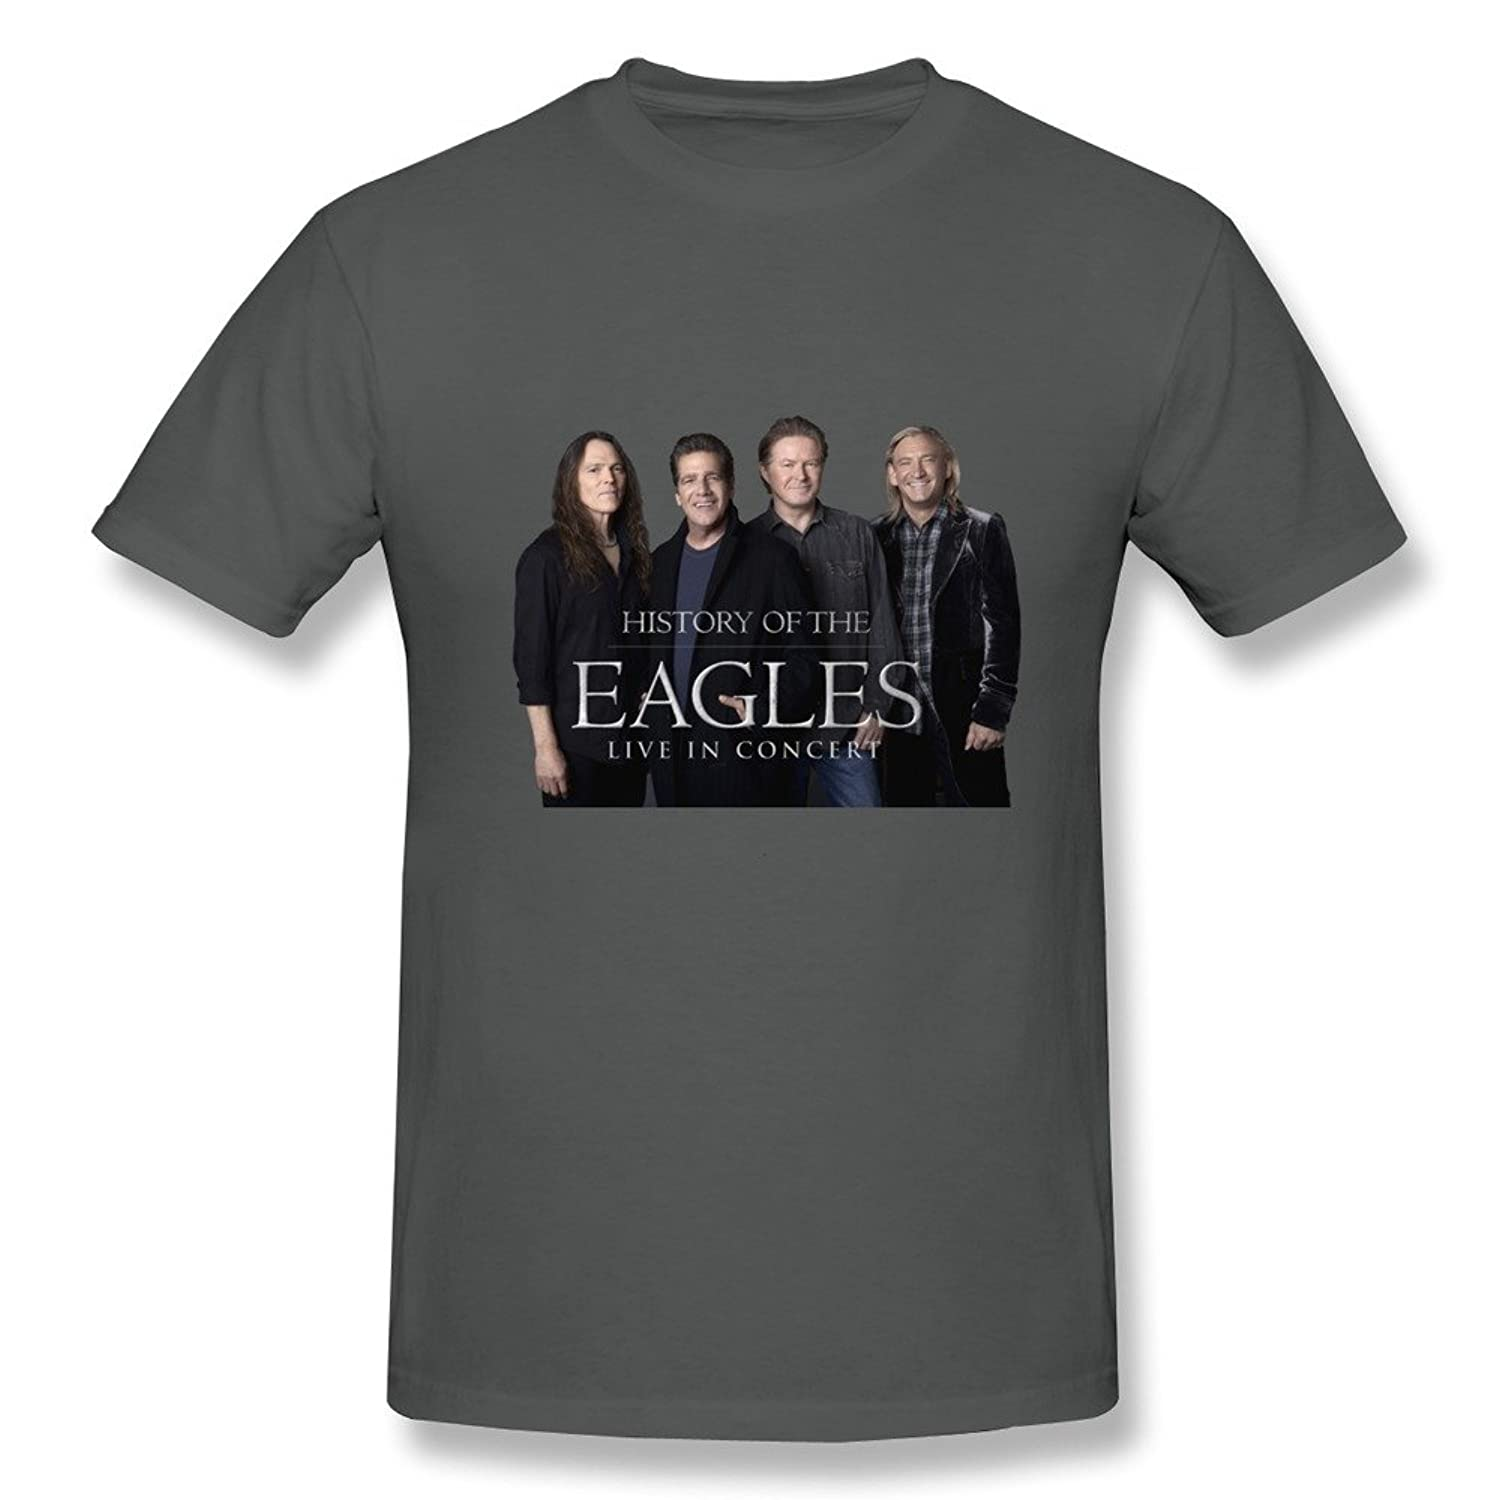 267722ccf History Of The Eagles Tour 2014 T Shirts - BCD Tofu House